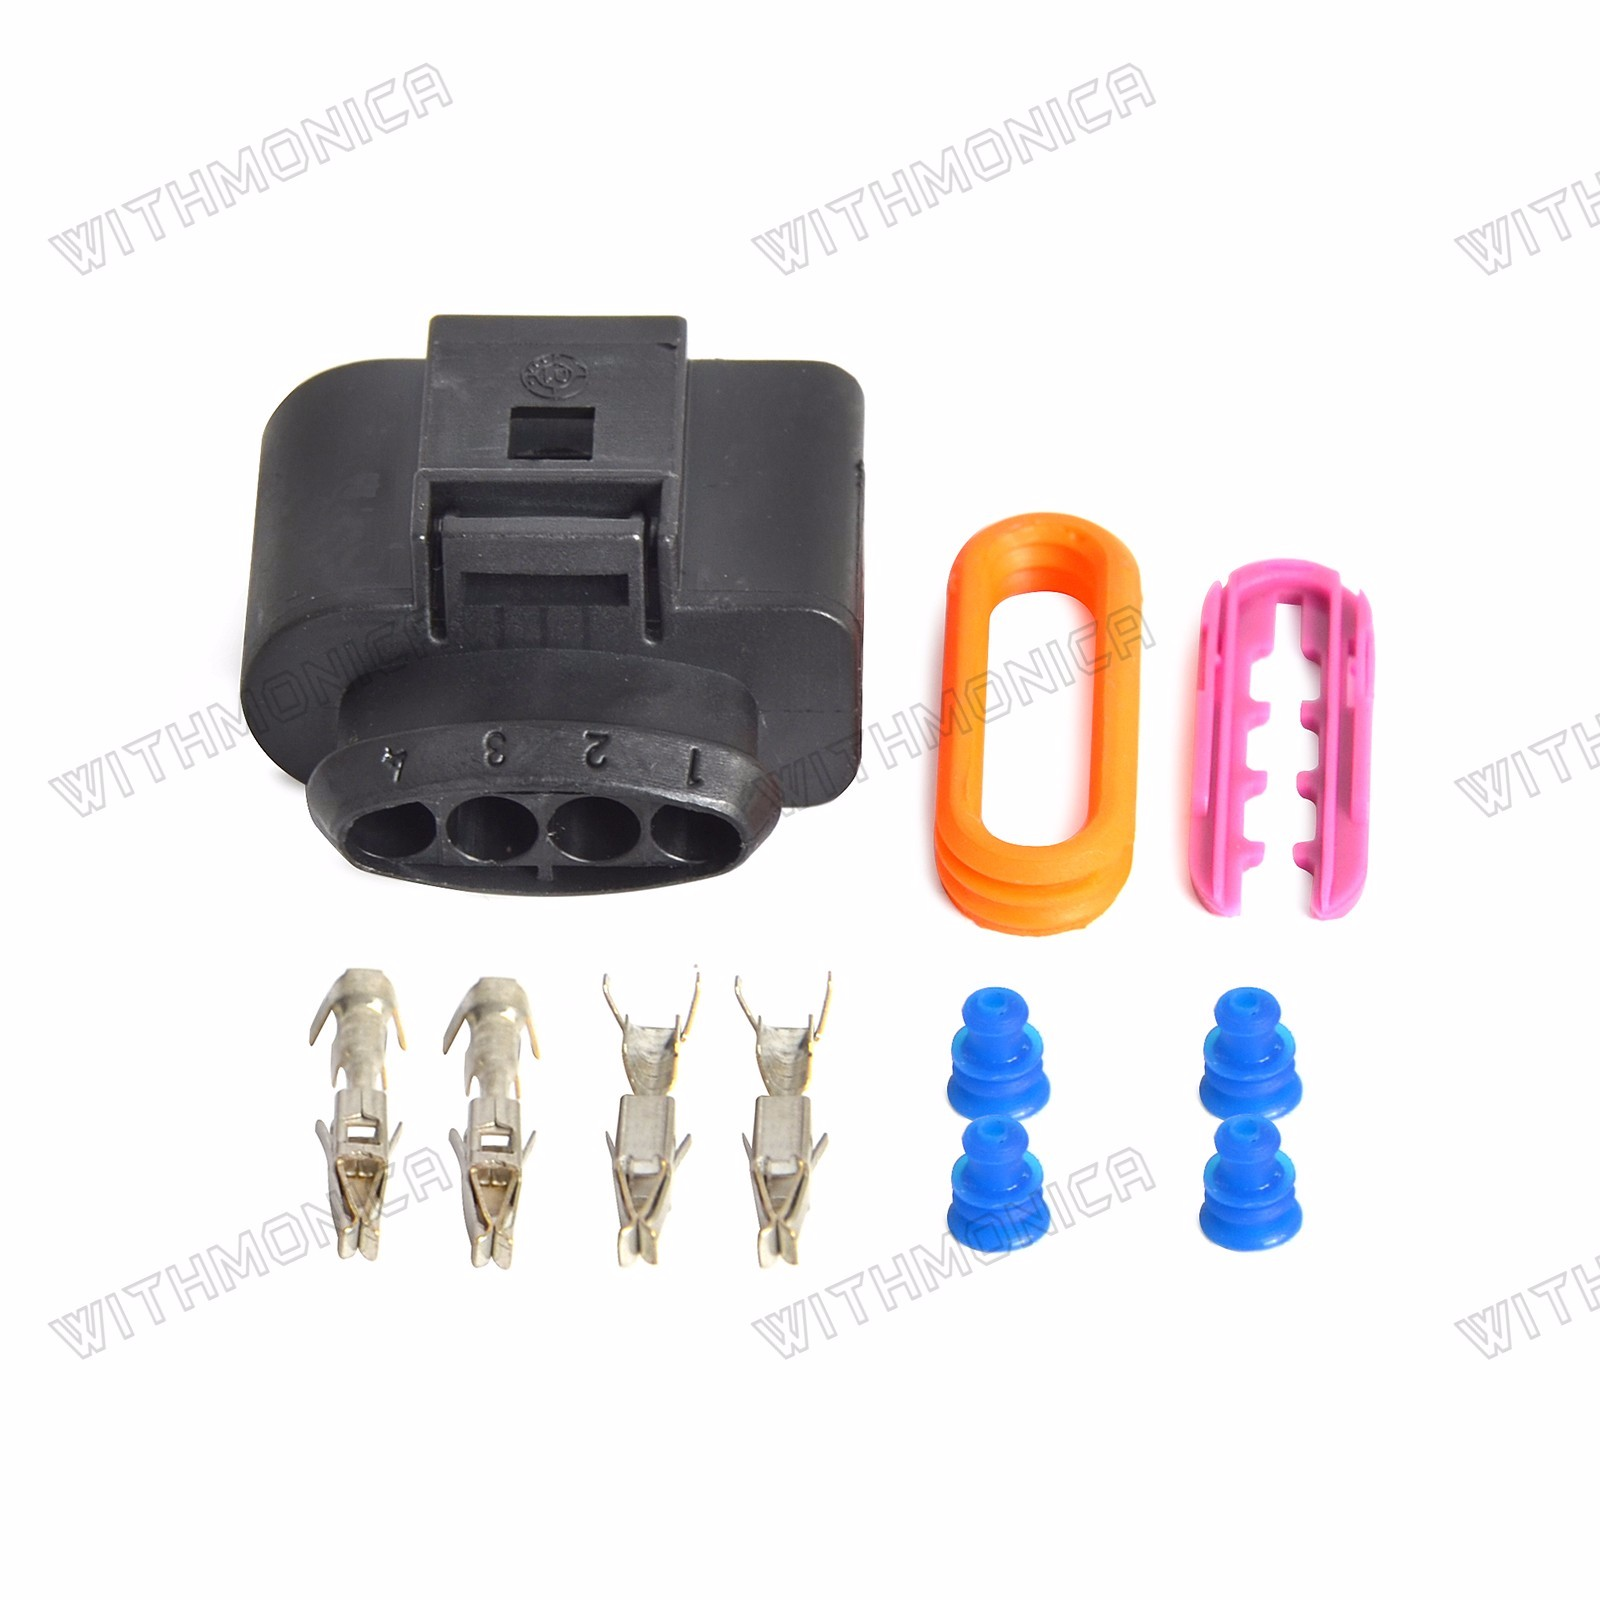 WI pr023_(2) audi vw ignition coil wiring harness connector repair kit a4 a6 a8 Wire Harness Maintance at n-0.co